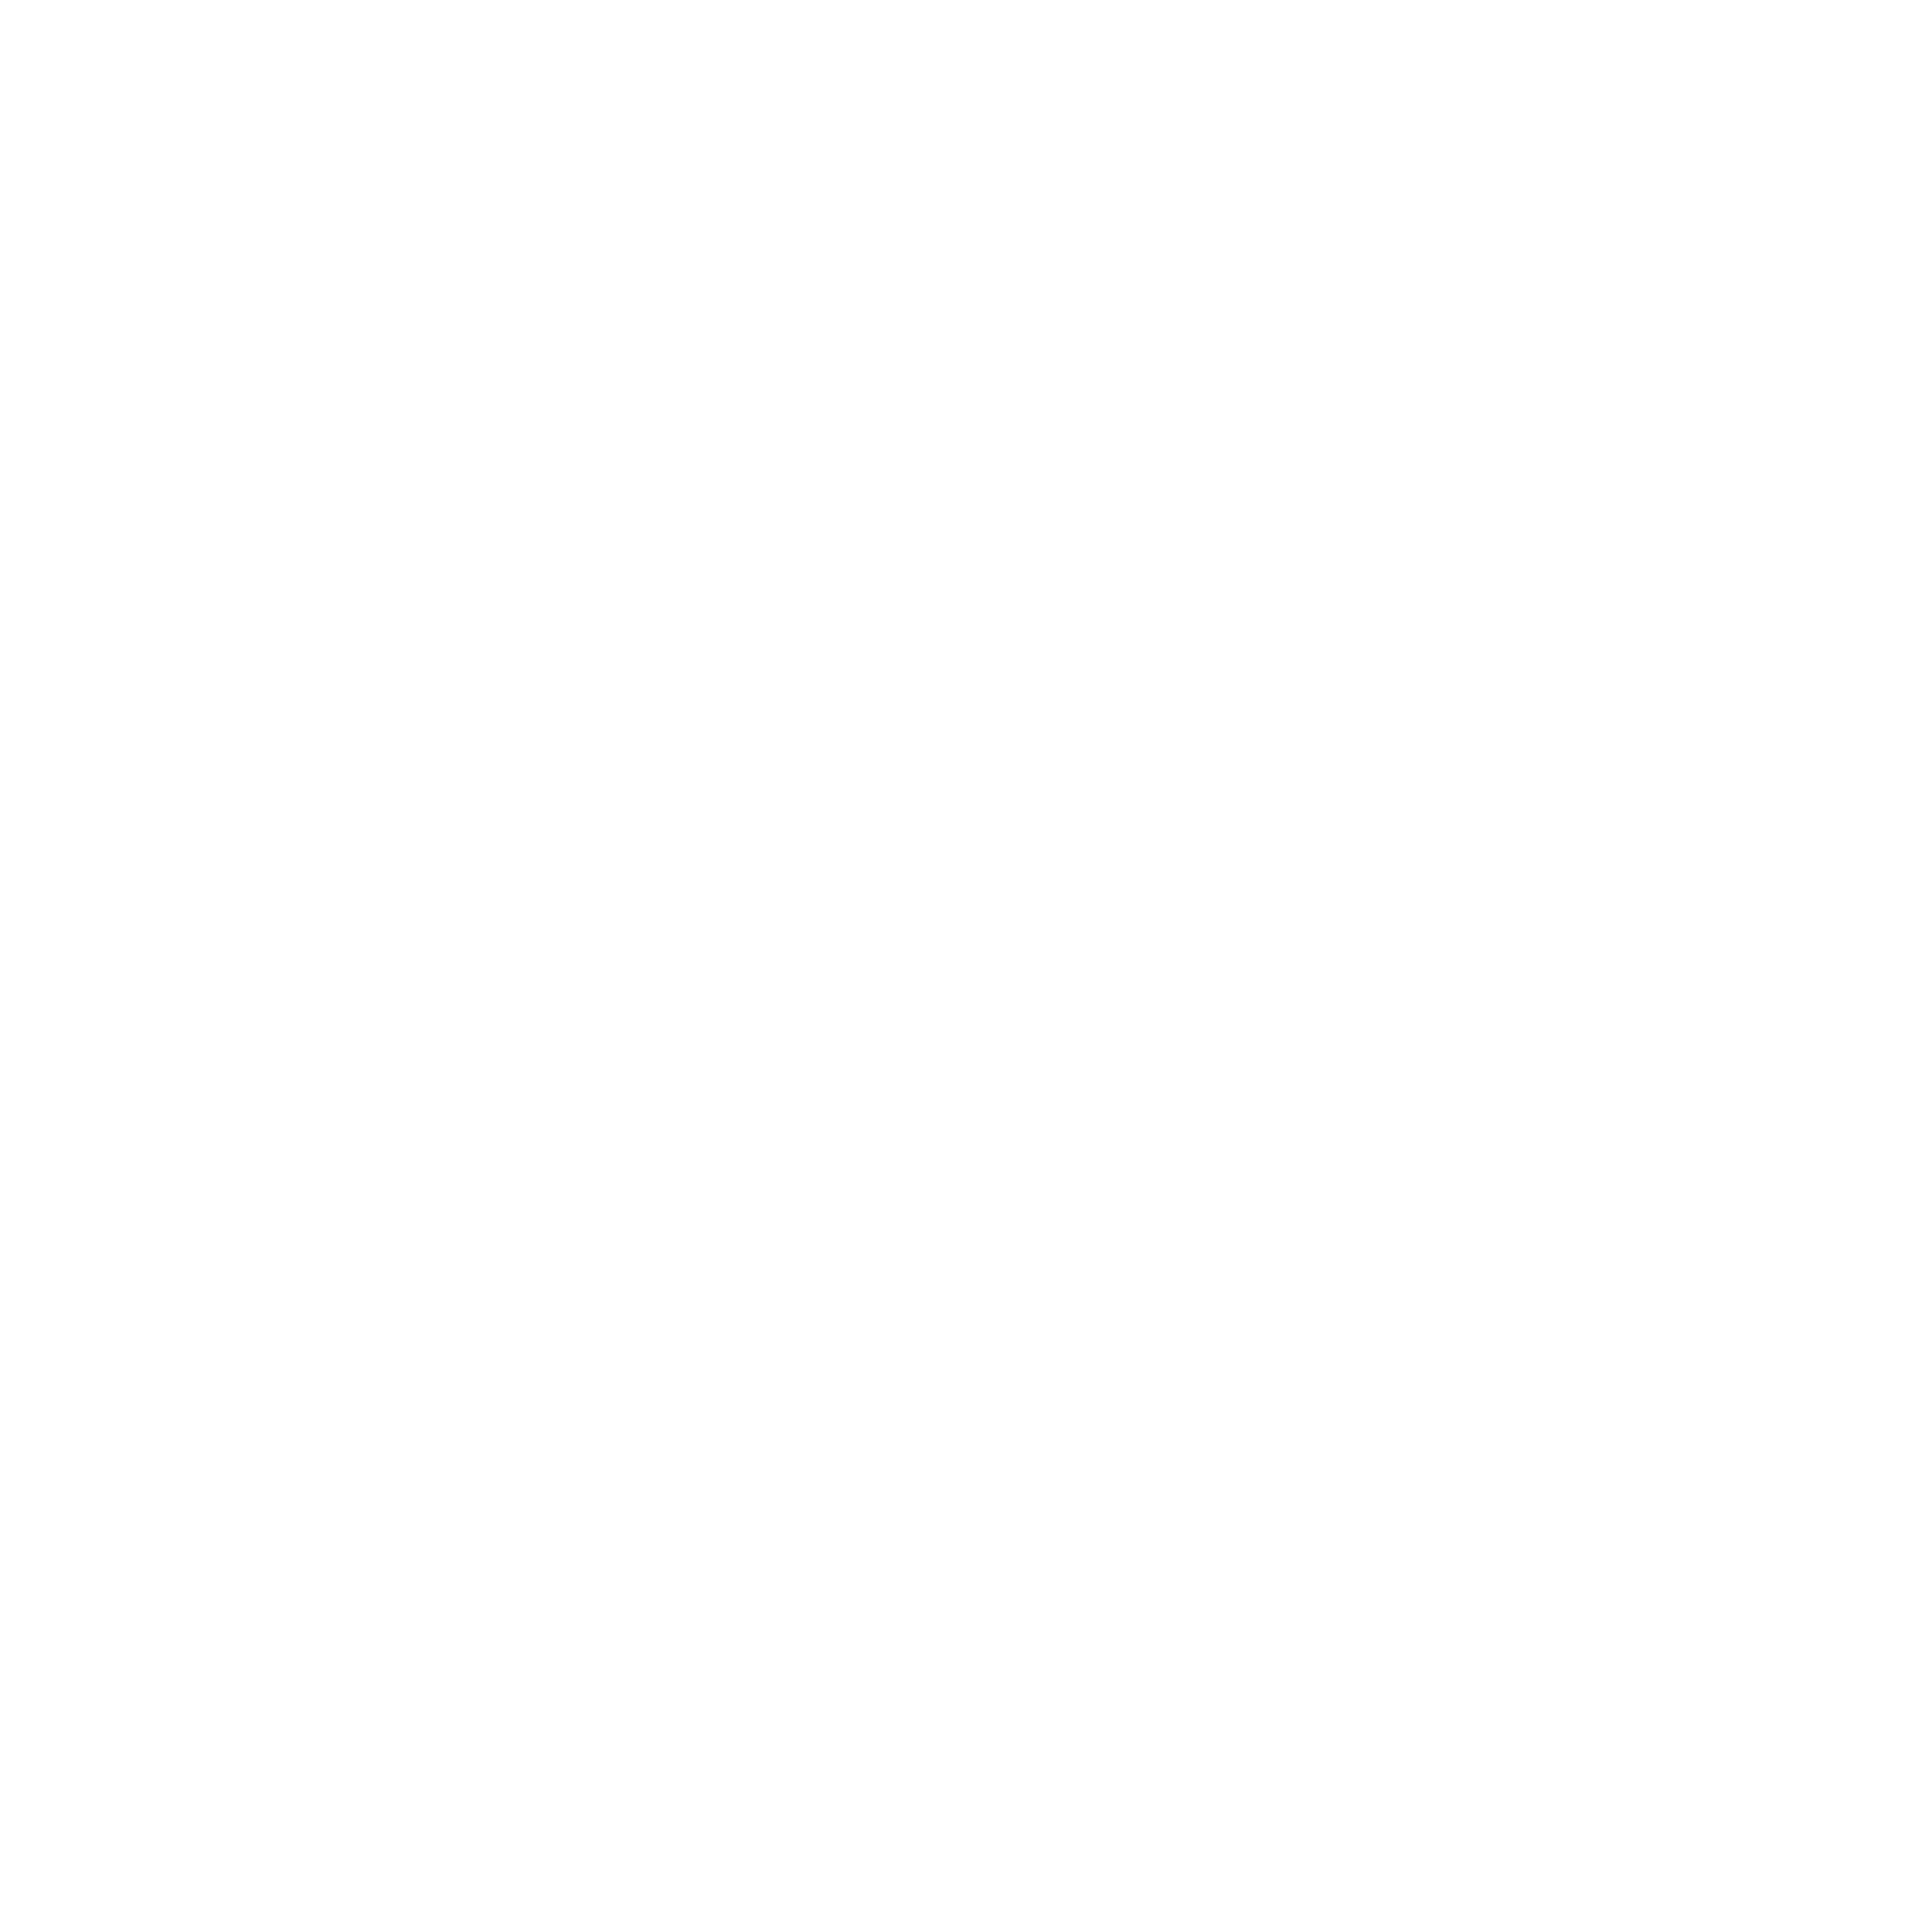 ASIC COOLING